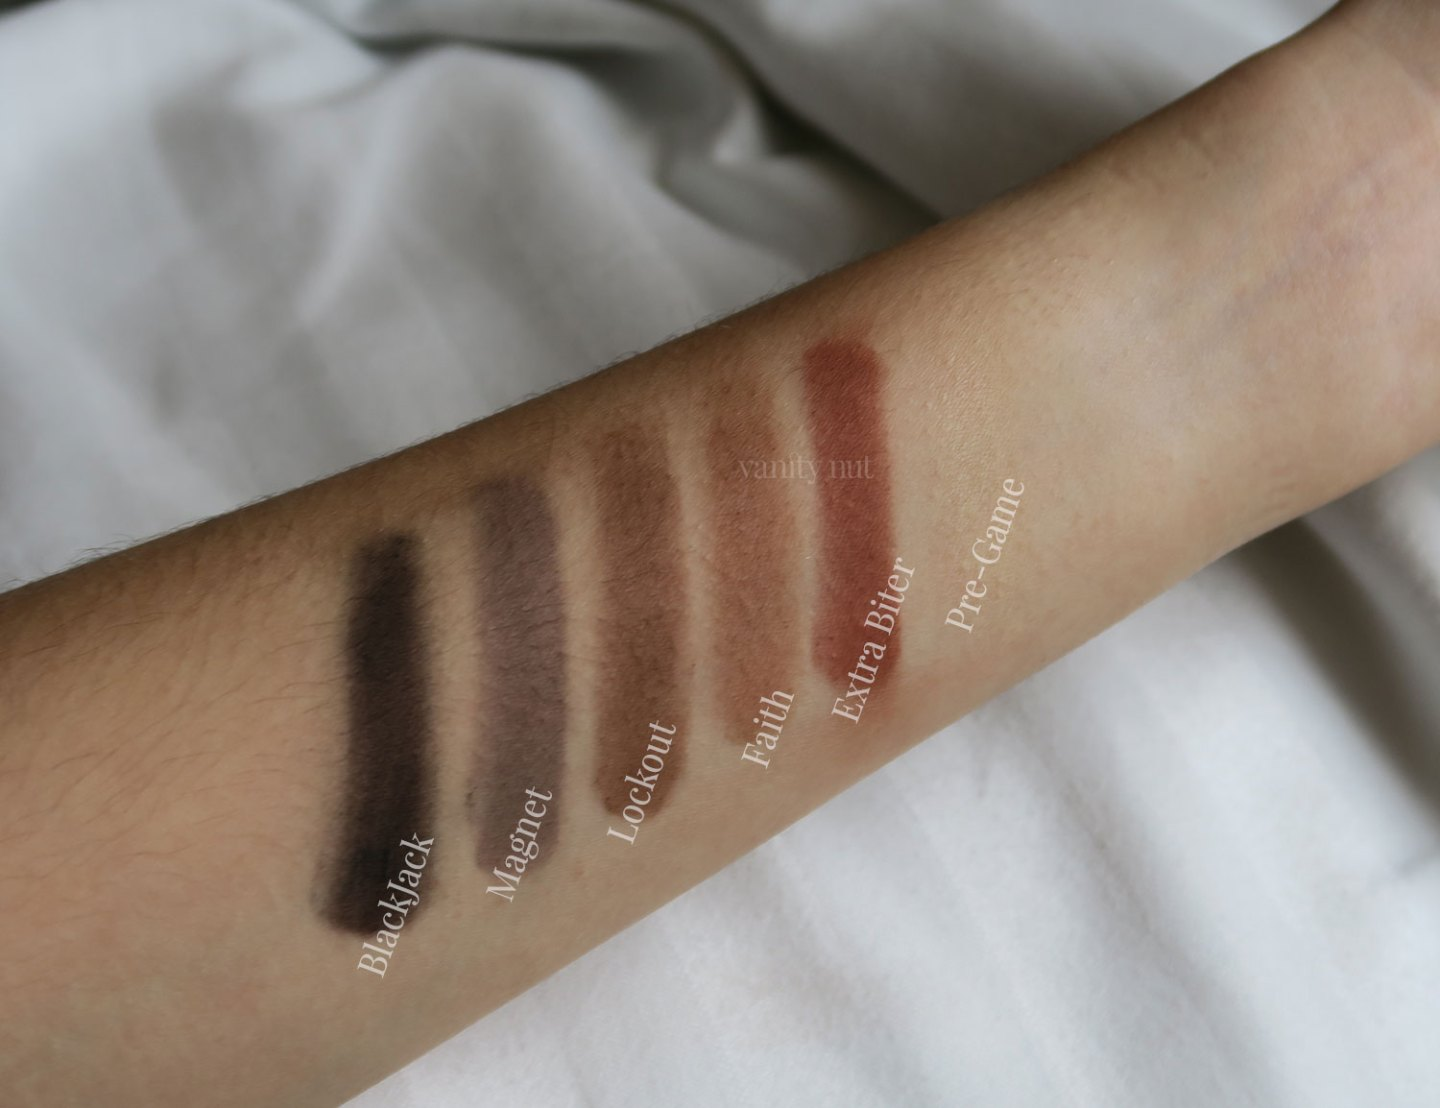 ultimate_basics_urban_decay_palette_shadows_swatches_2